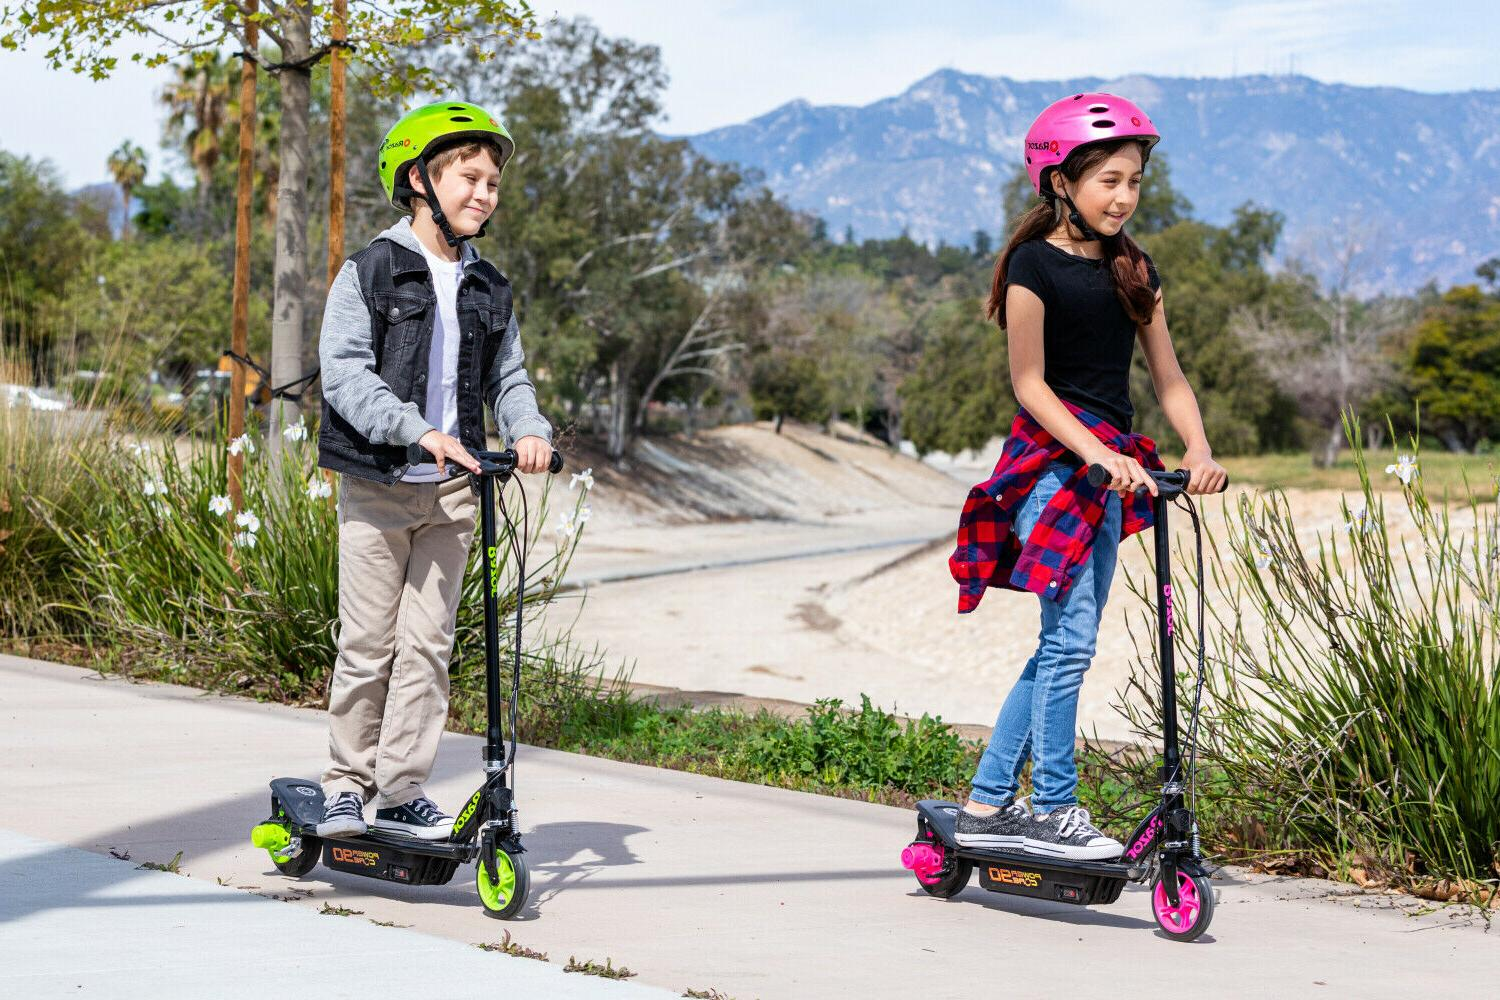 Kids Electric Power Core runtime mph, and